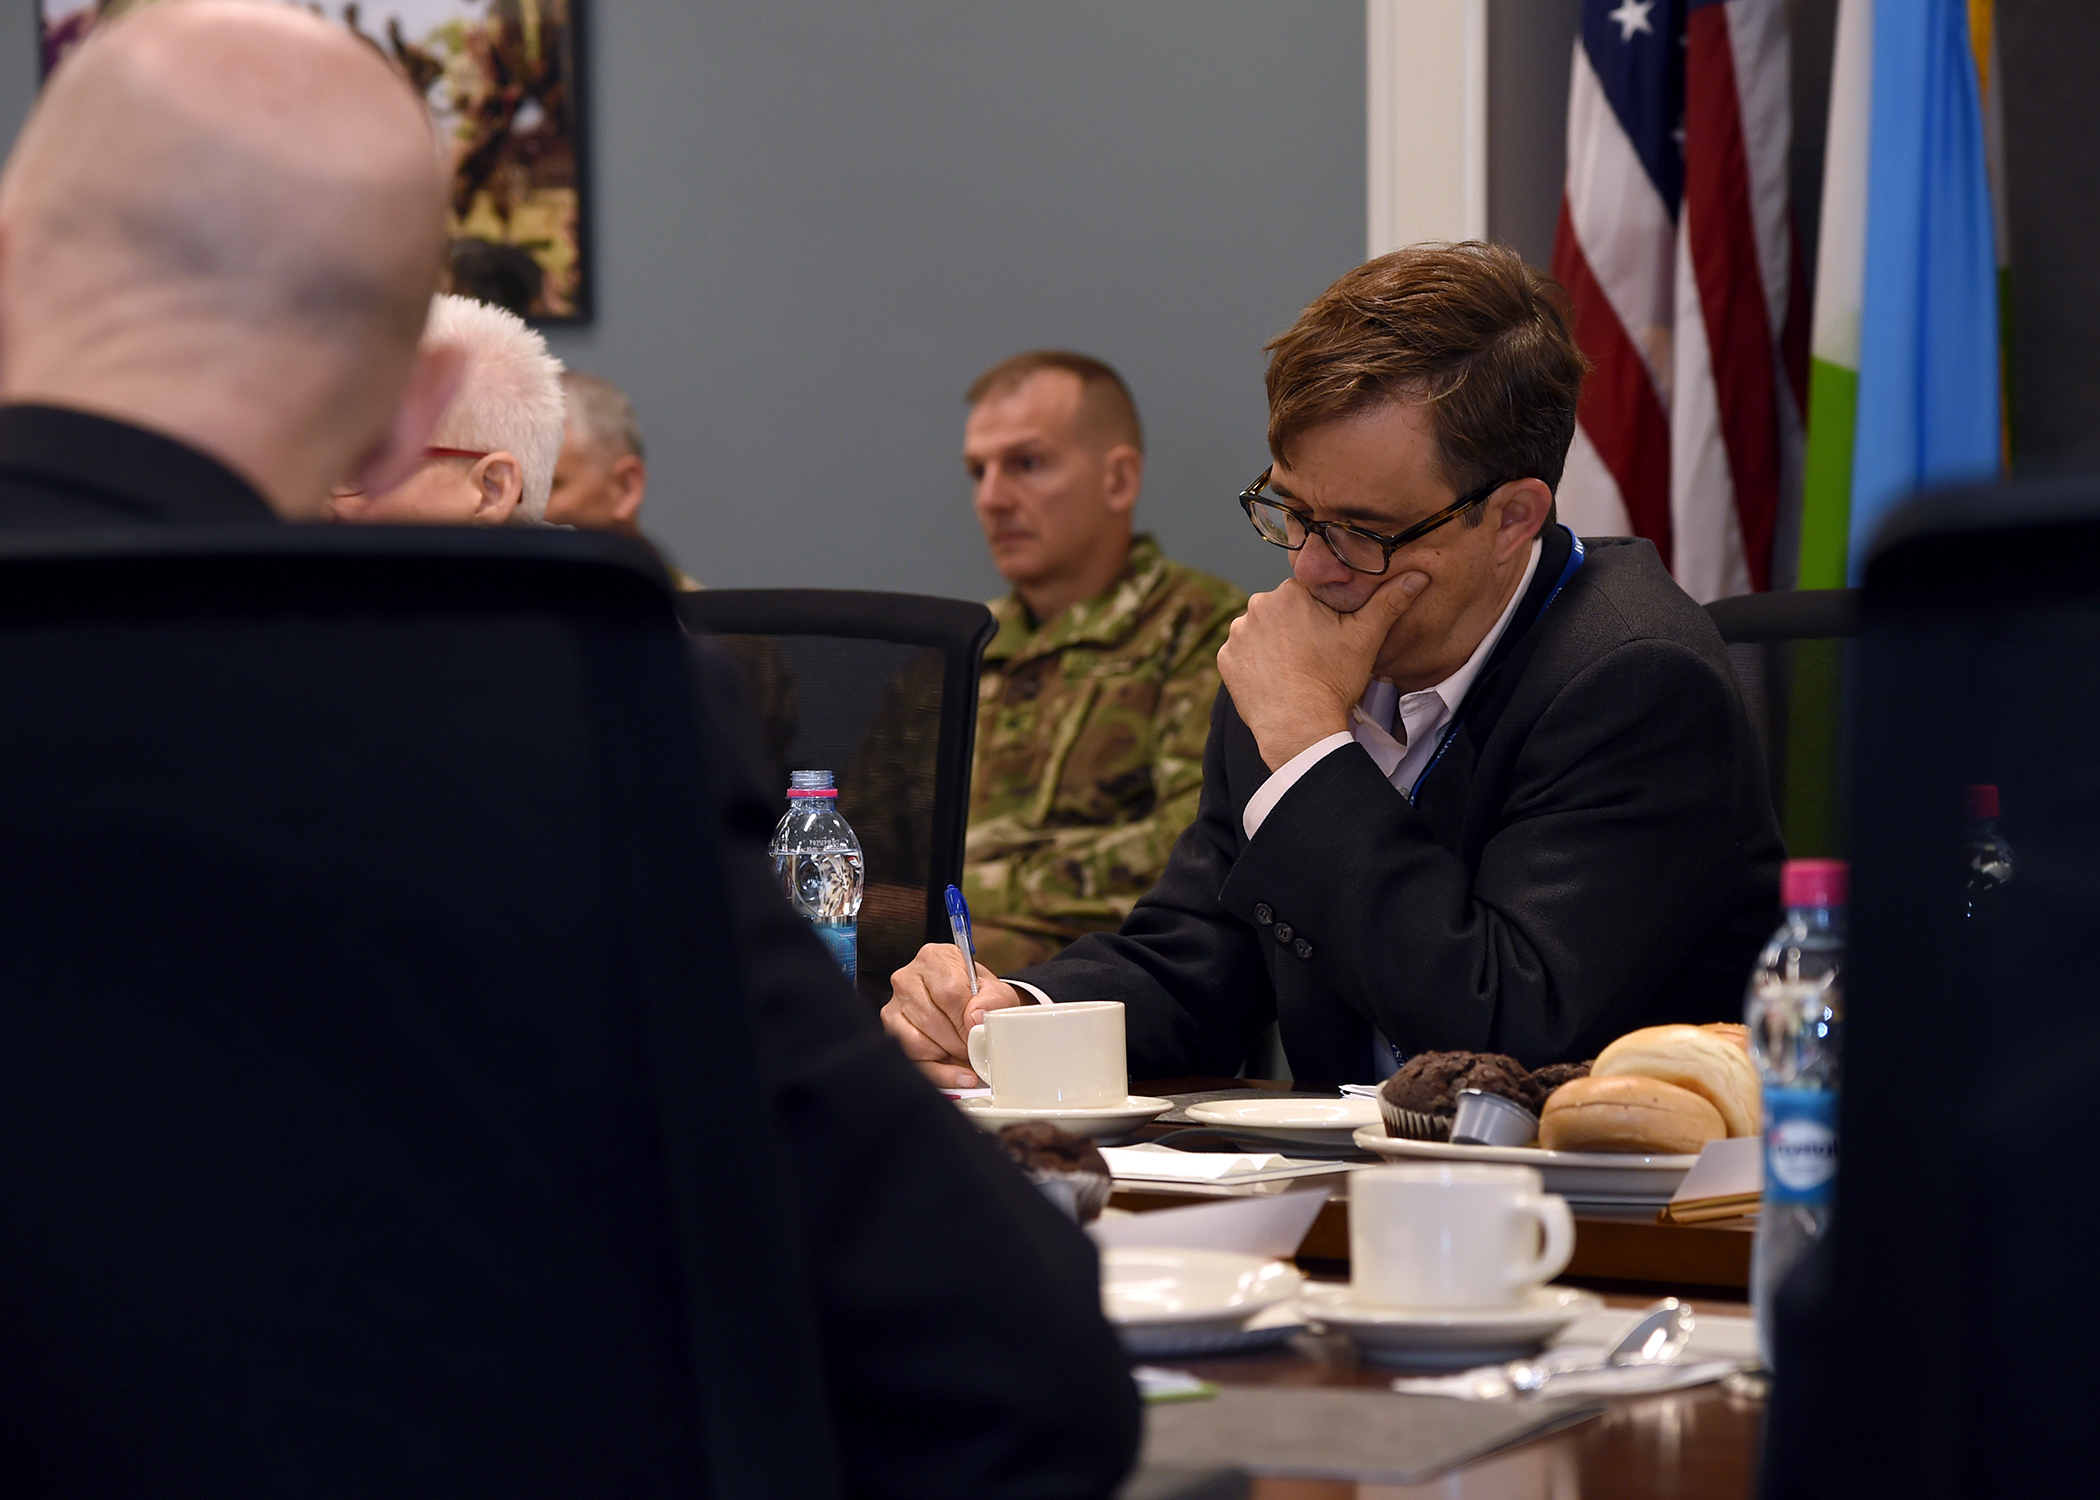 Amb. Peter Vrooman, U.S. Ambassador to Rwanda, takes notes during a meeting at the Combined Joint Task Force-Horn of Africa (CJTF-HOA) East Africa Security Forum (EASF) at Camp Lemonnier, Djibouti, Dec. 13, 2018. The EASF provides opportunities for CJTF-HOA and interagency leaders to assess and align efforts, and develop synchronized courses of action that support common goals. (U.S. Navy photo by Mass Communication Specialist 1st Class Nick Scott)